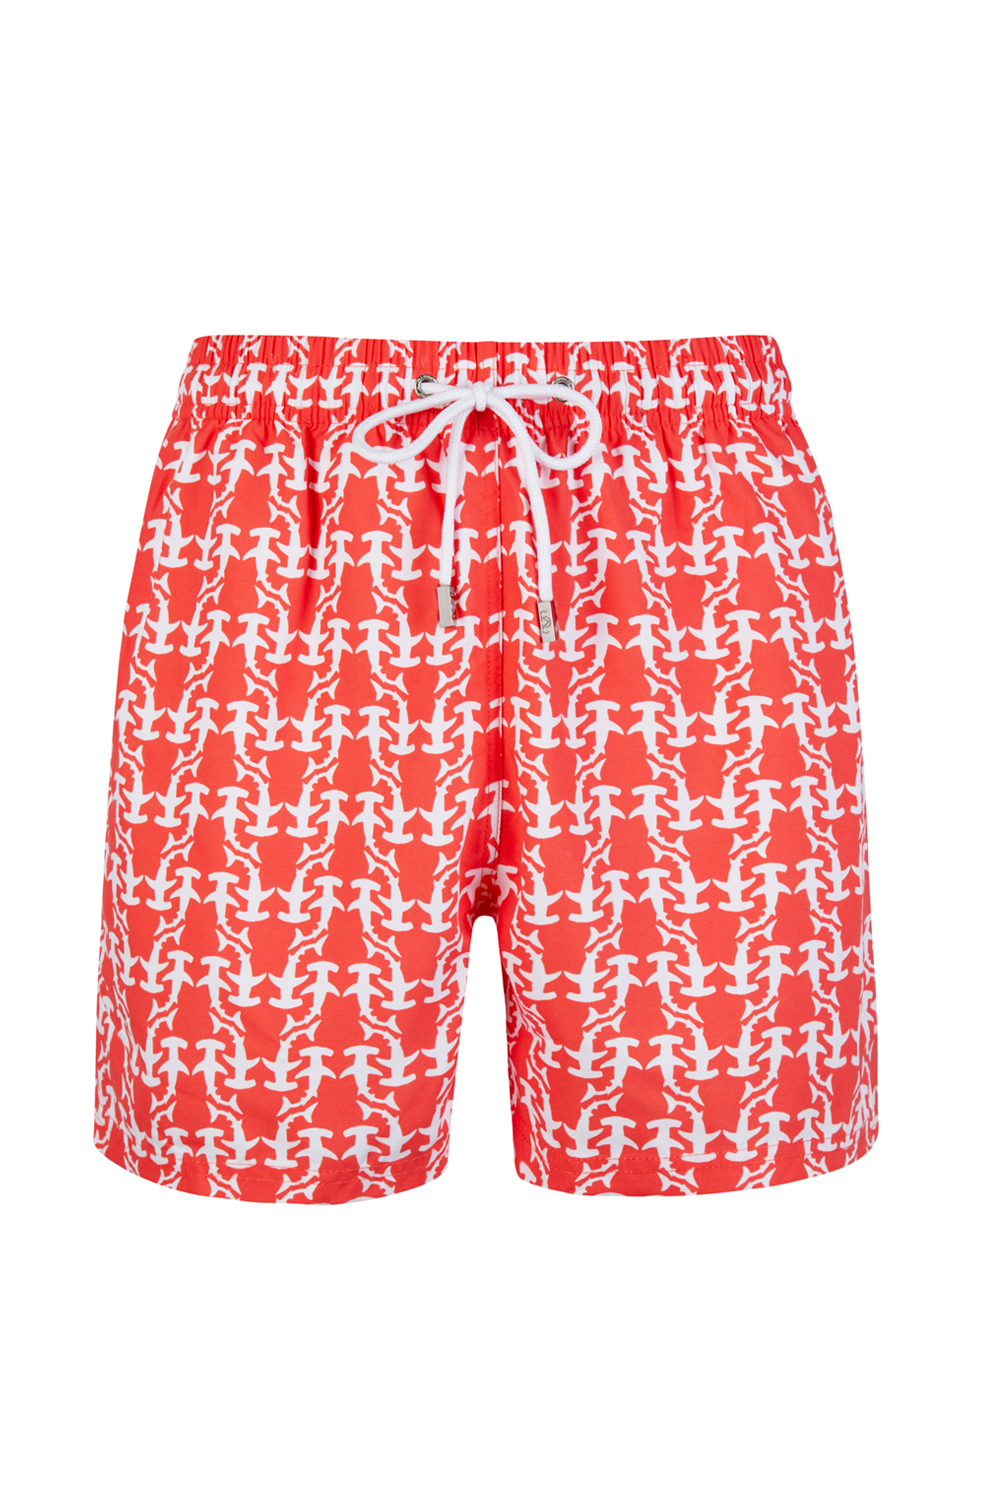 The Red Hammerhead Shark Swim Shorts